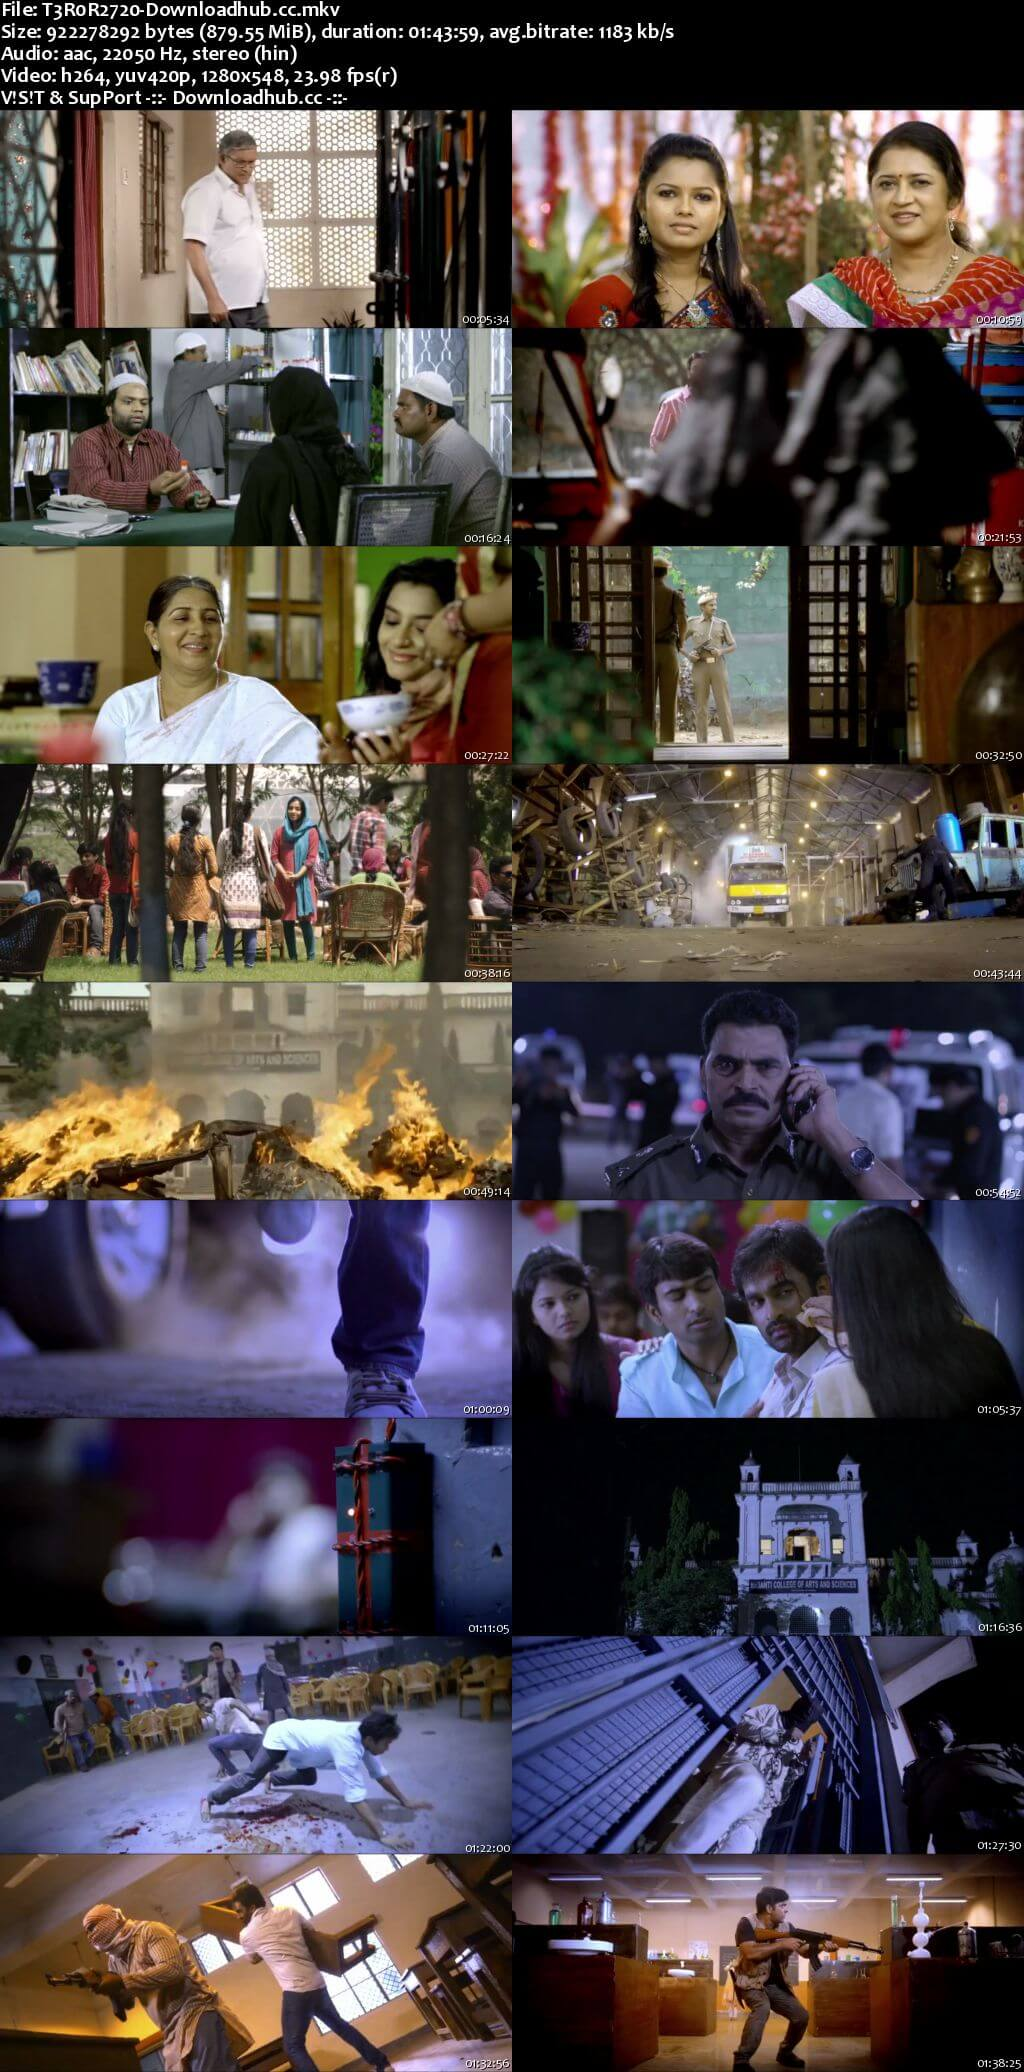 Terror 2 2018 Hindi Dubbed 720p HDRip